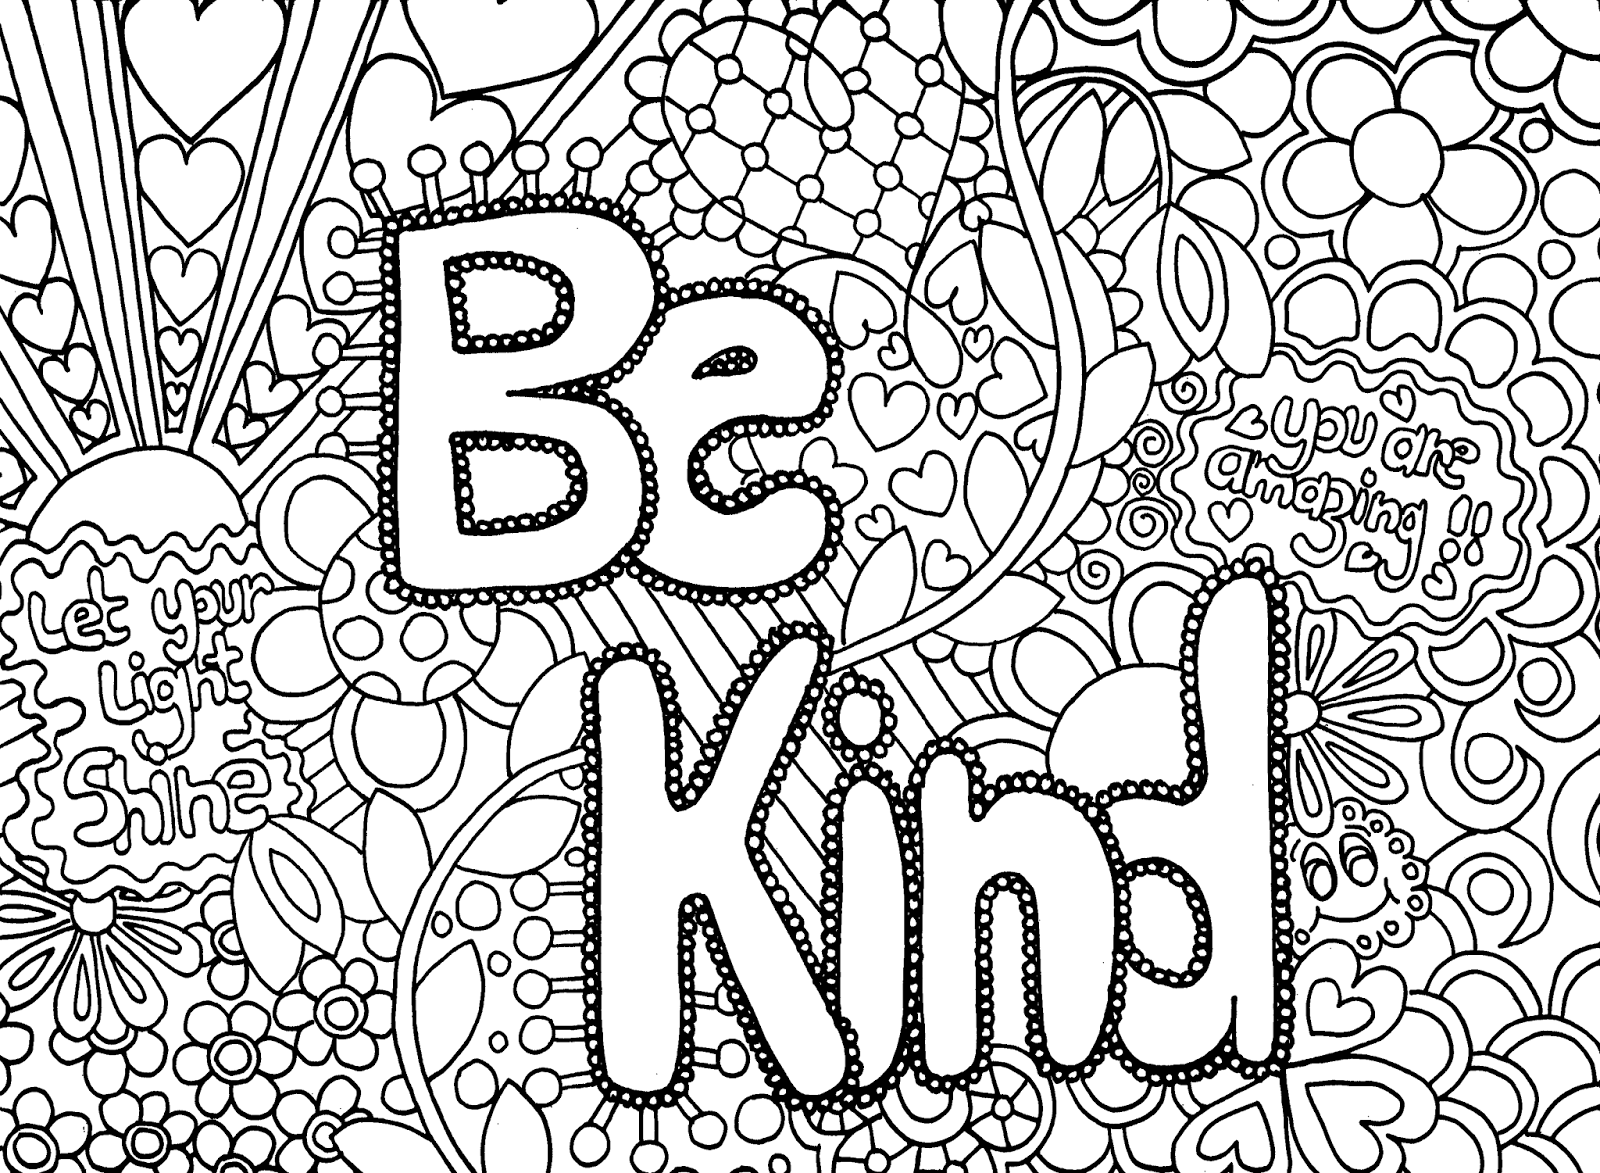 teenager-coloring-page-0003-q1